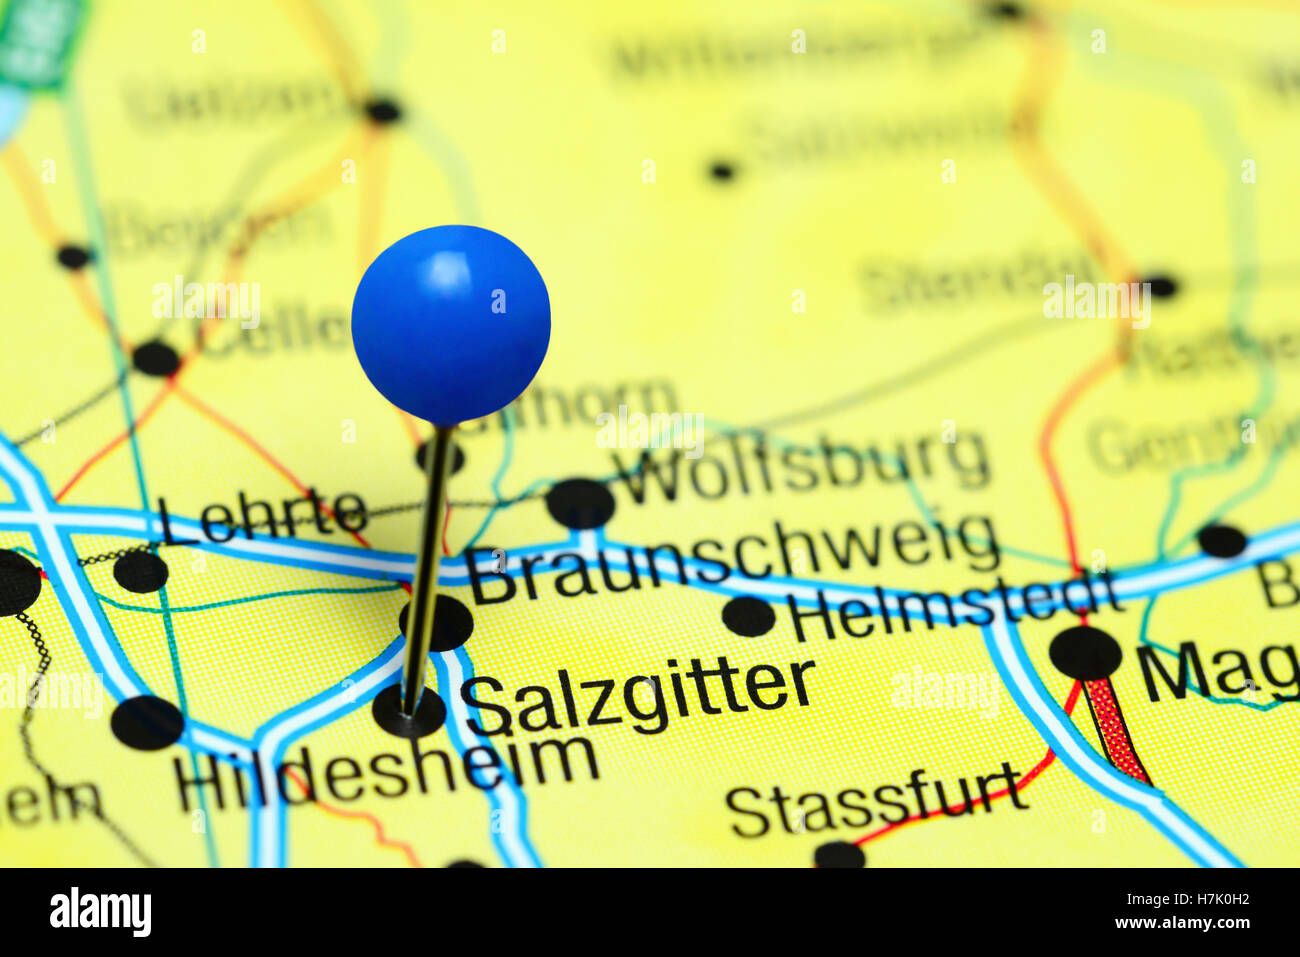 Salzgitter pinned on a map of Germany Stock Photo Royalty Free